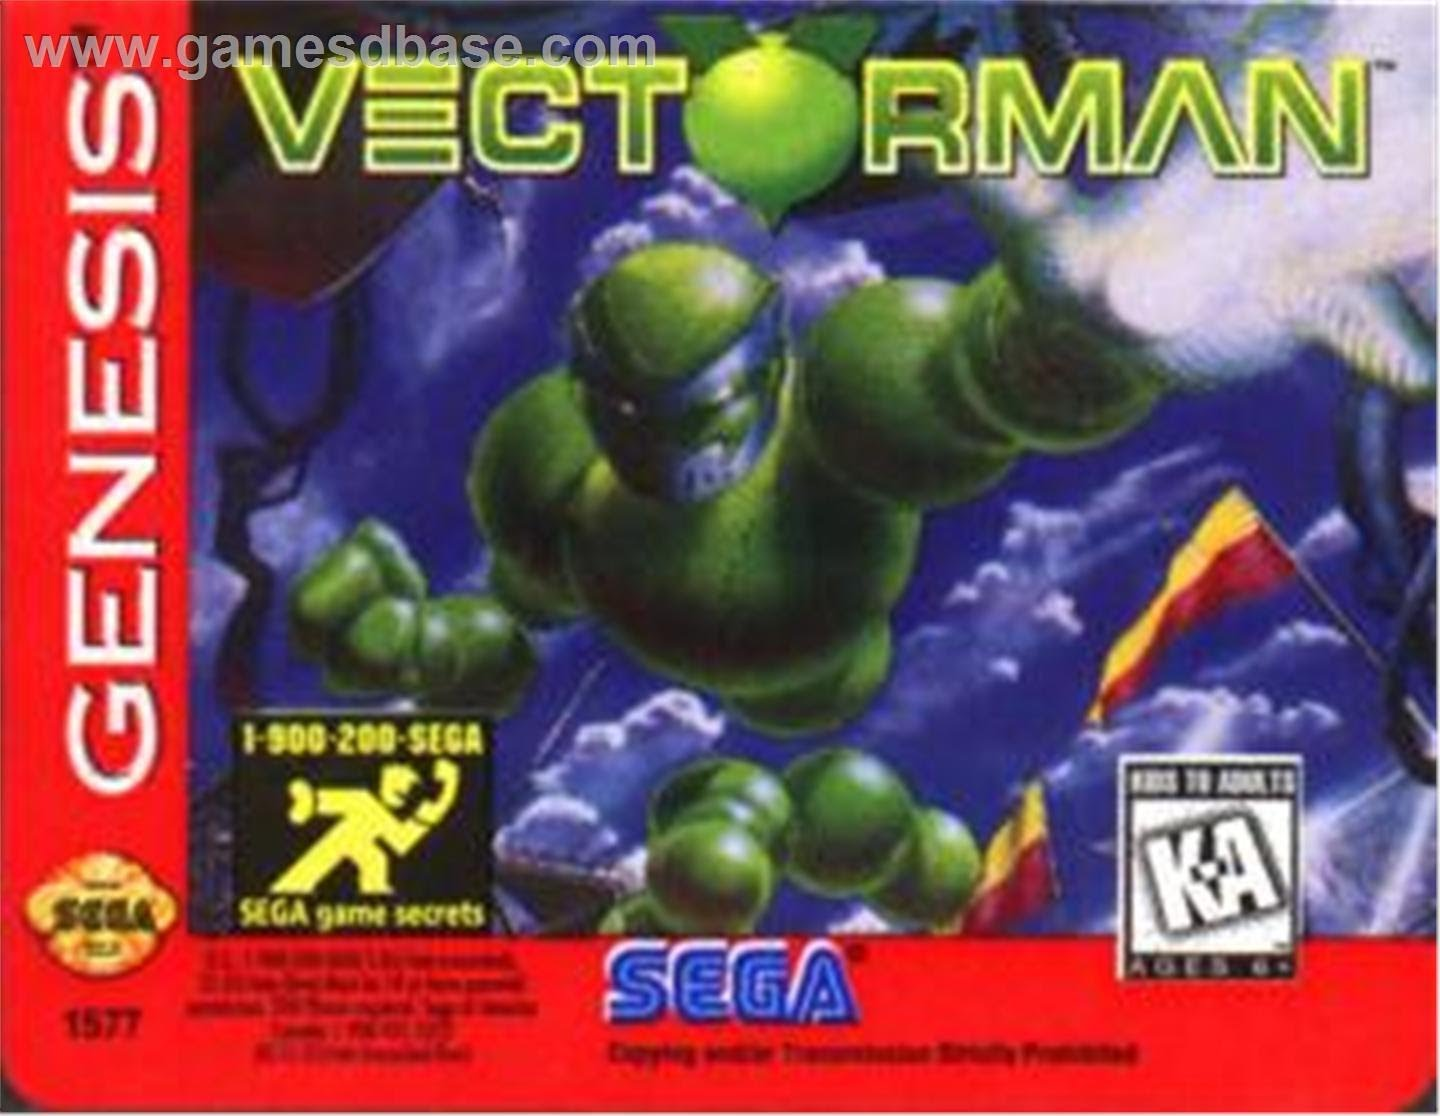 1440x1116 Vectorman Ost Original Soundtrack